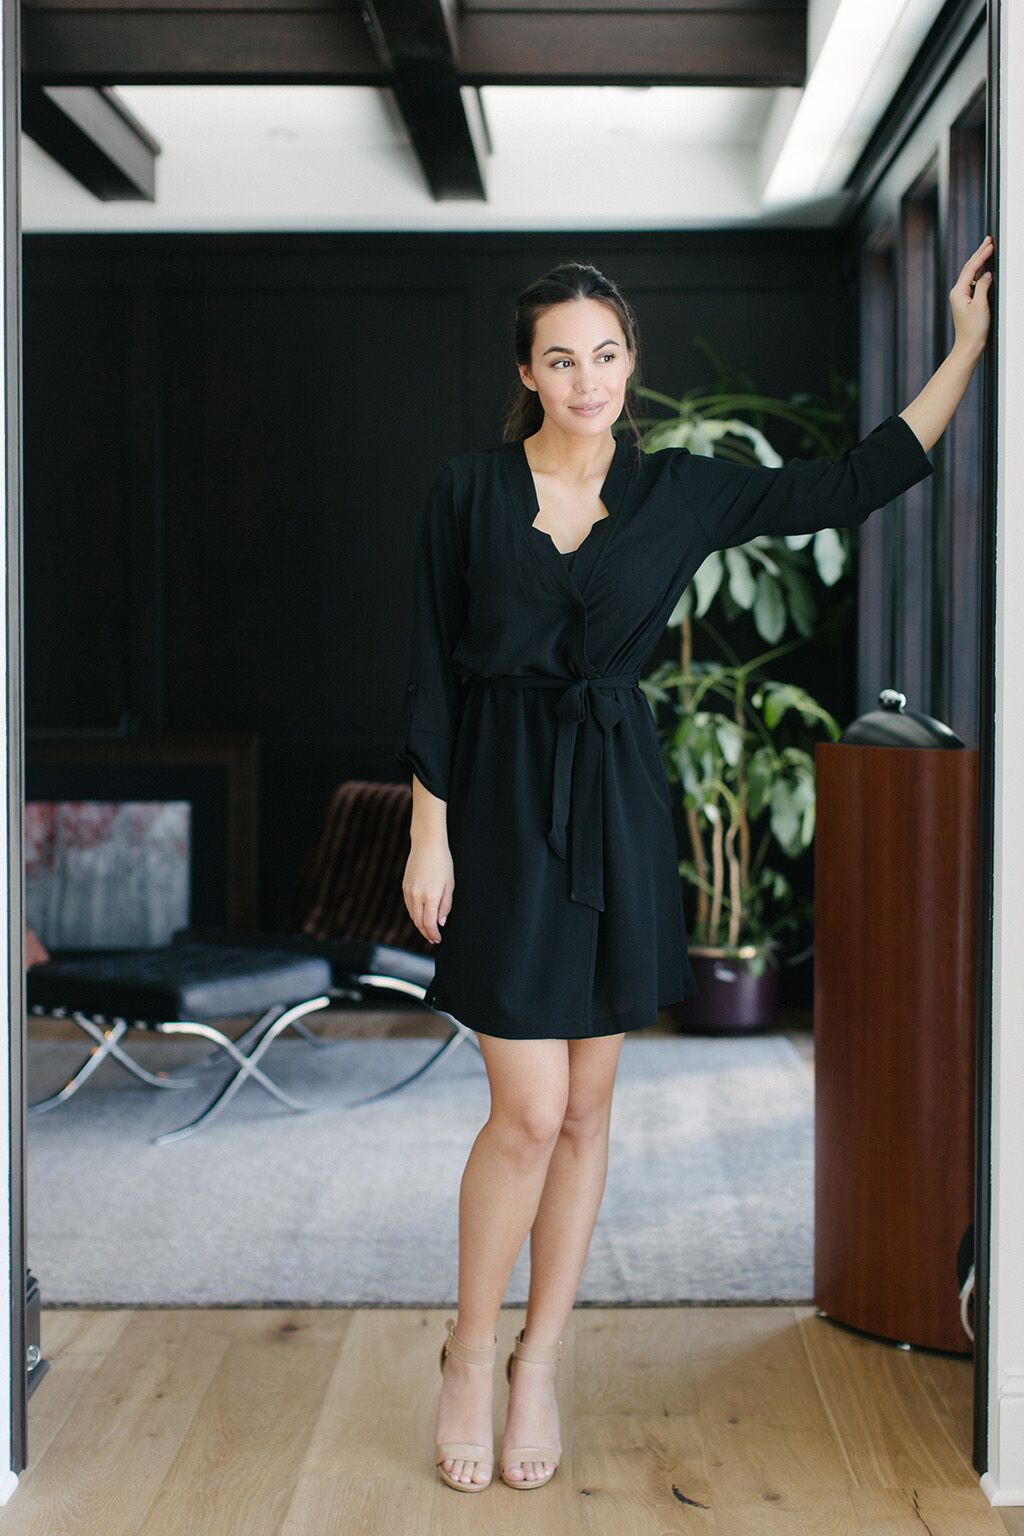 KOKOON Short A star Is Born Duster Dress in Black 3